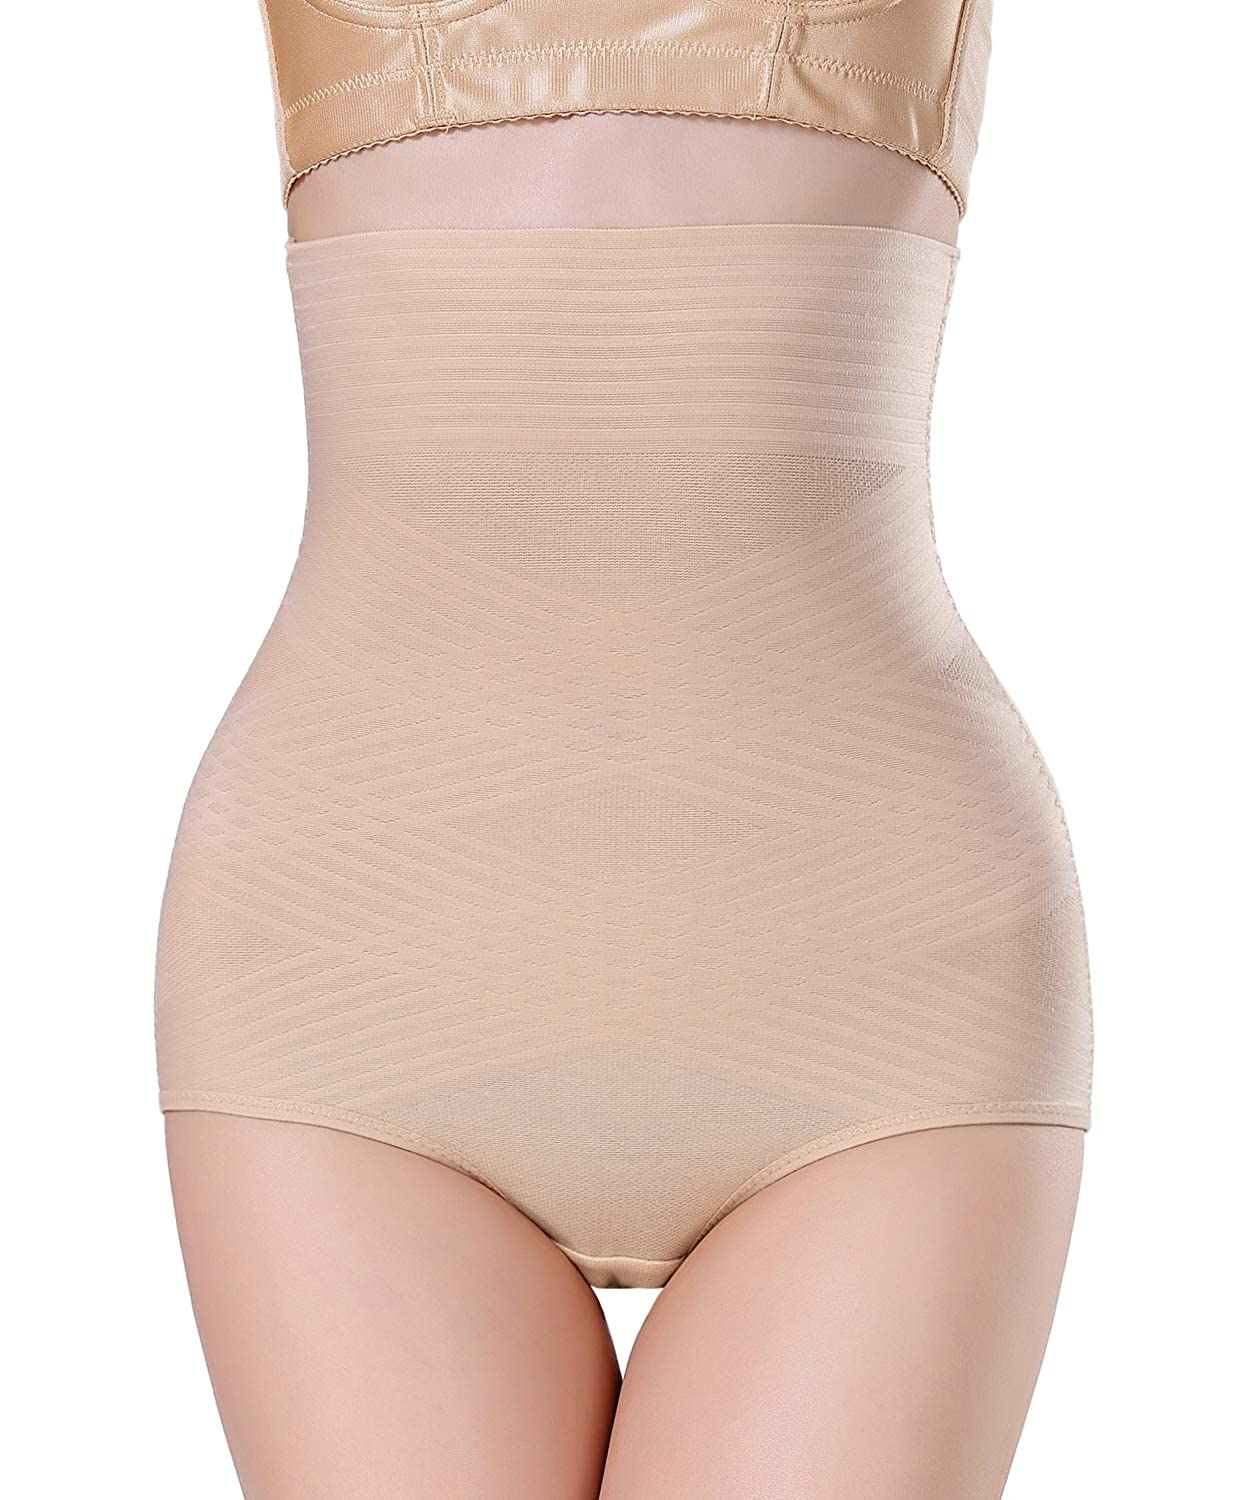 1b09a5af511ec0 AGROSTE Womens Shapewear Panties Bodysuit Body Shaper High Waist Tummy  Control Seamless Strapless Slimming Shorts Briefs at Amazon Women s  Clothing store